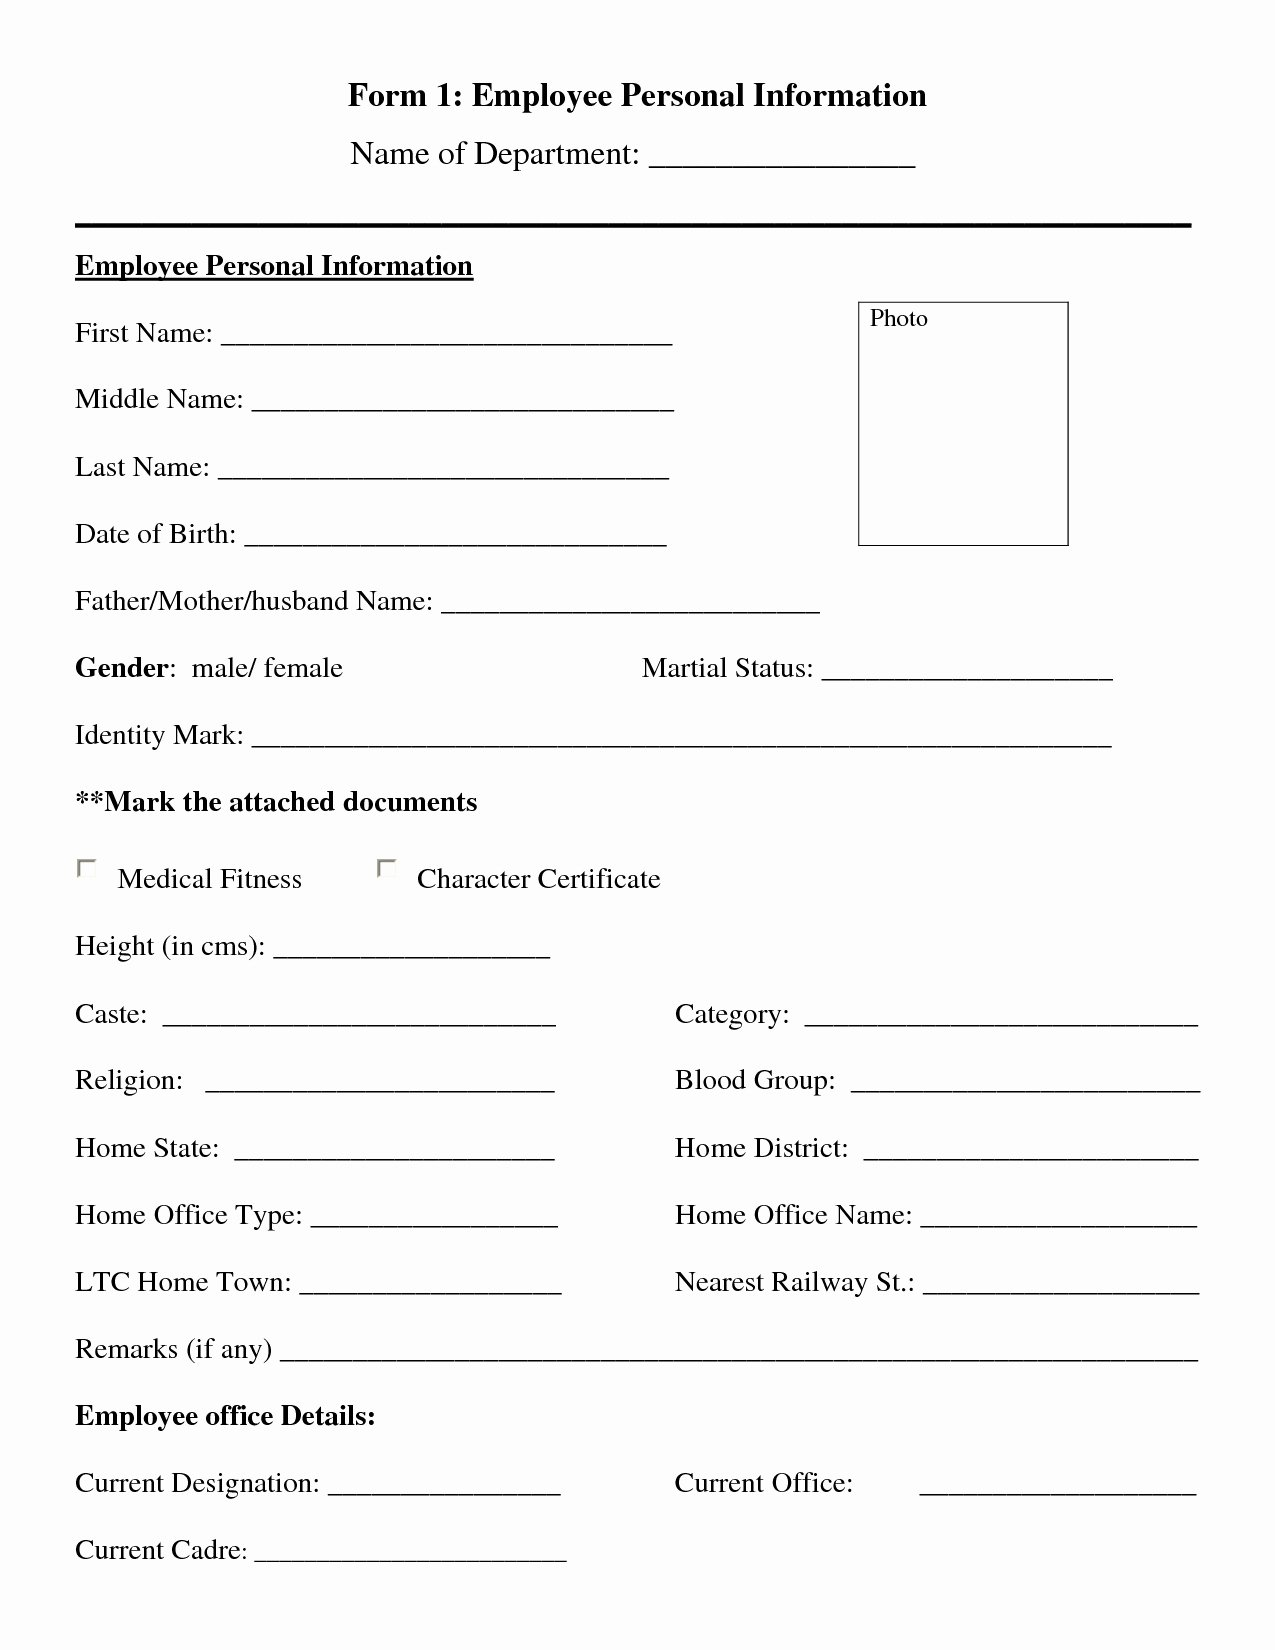 Personal Info forms Template Best Of Personal Information Template Portablegasgrillweber